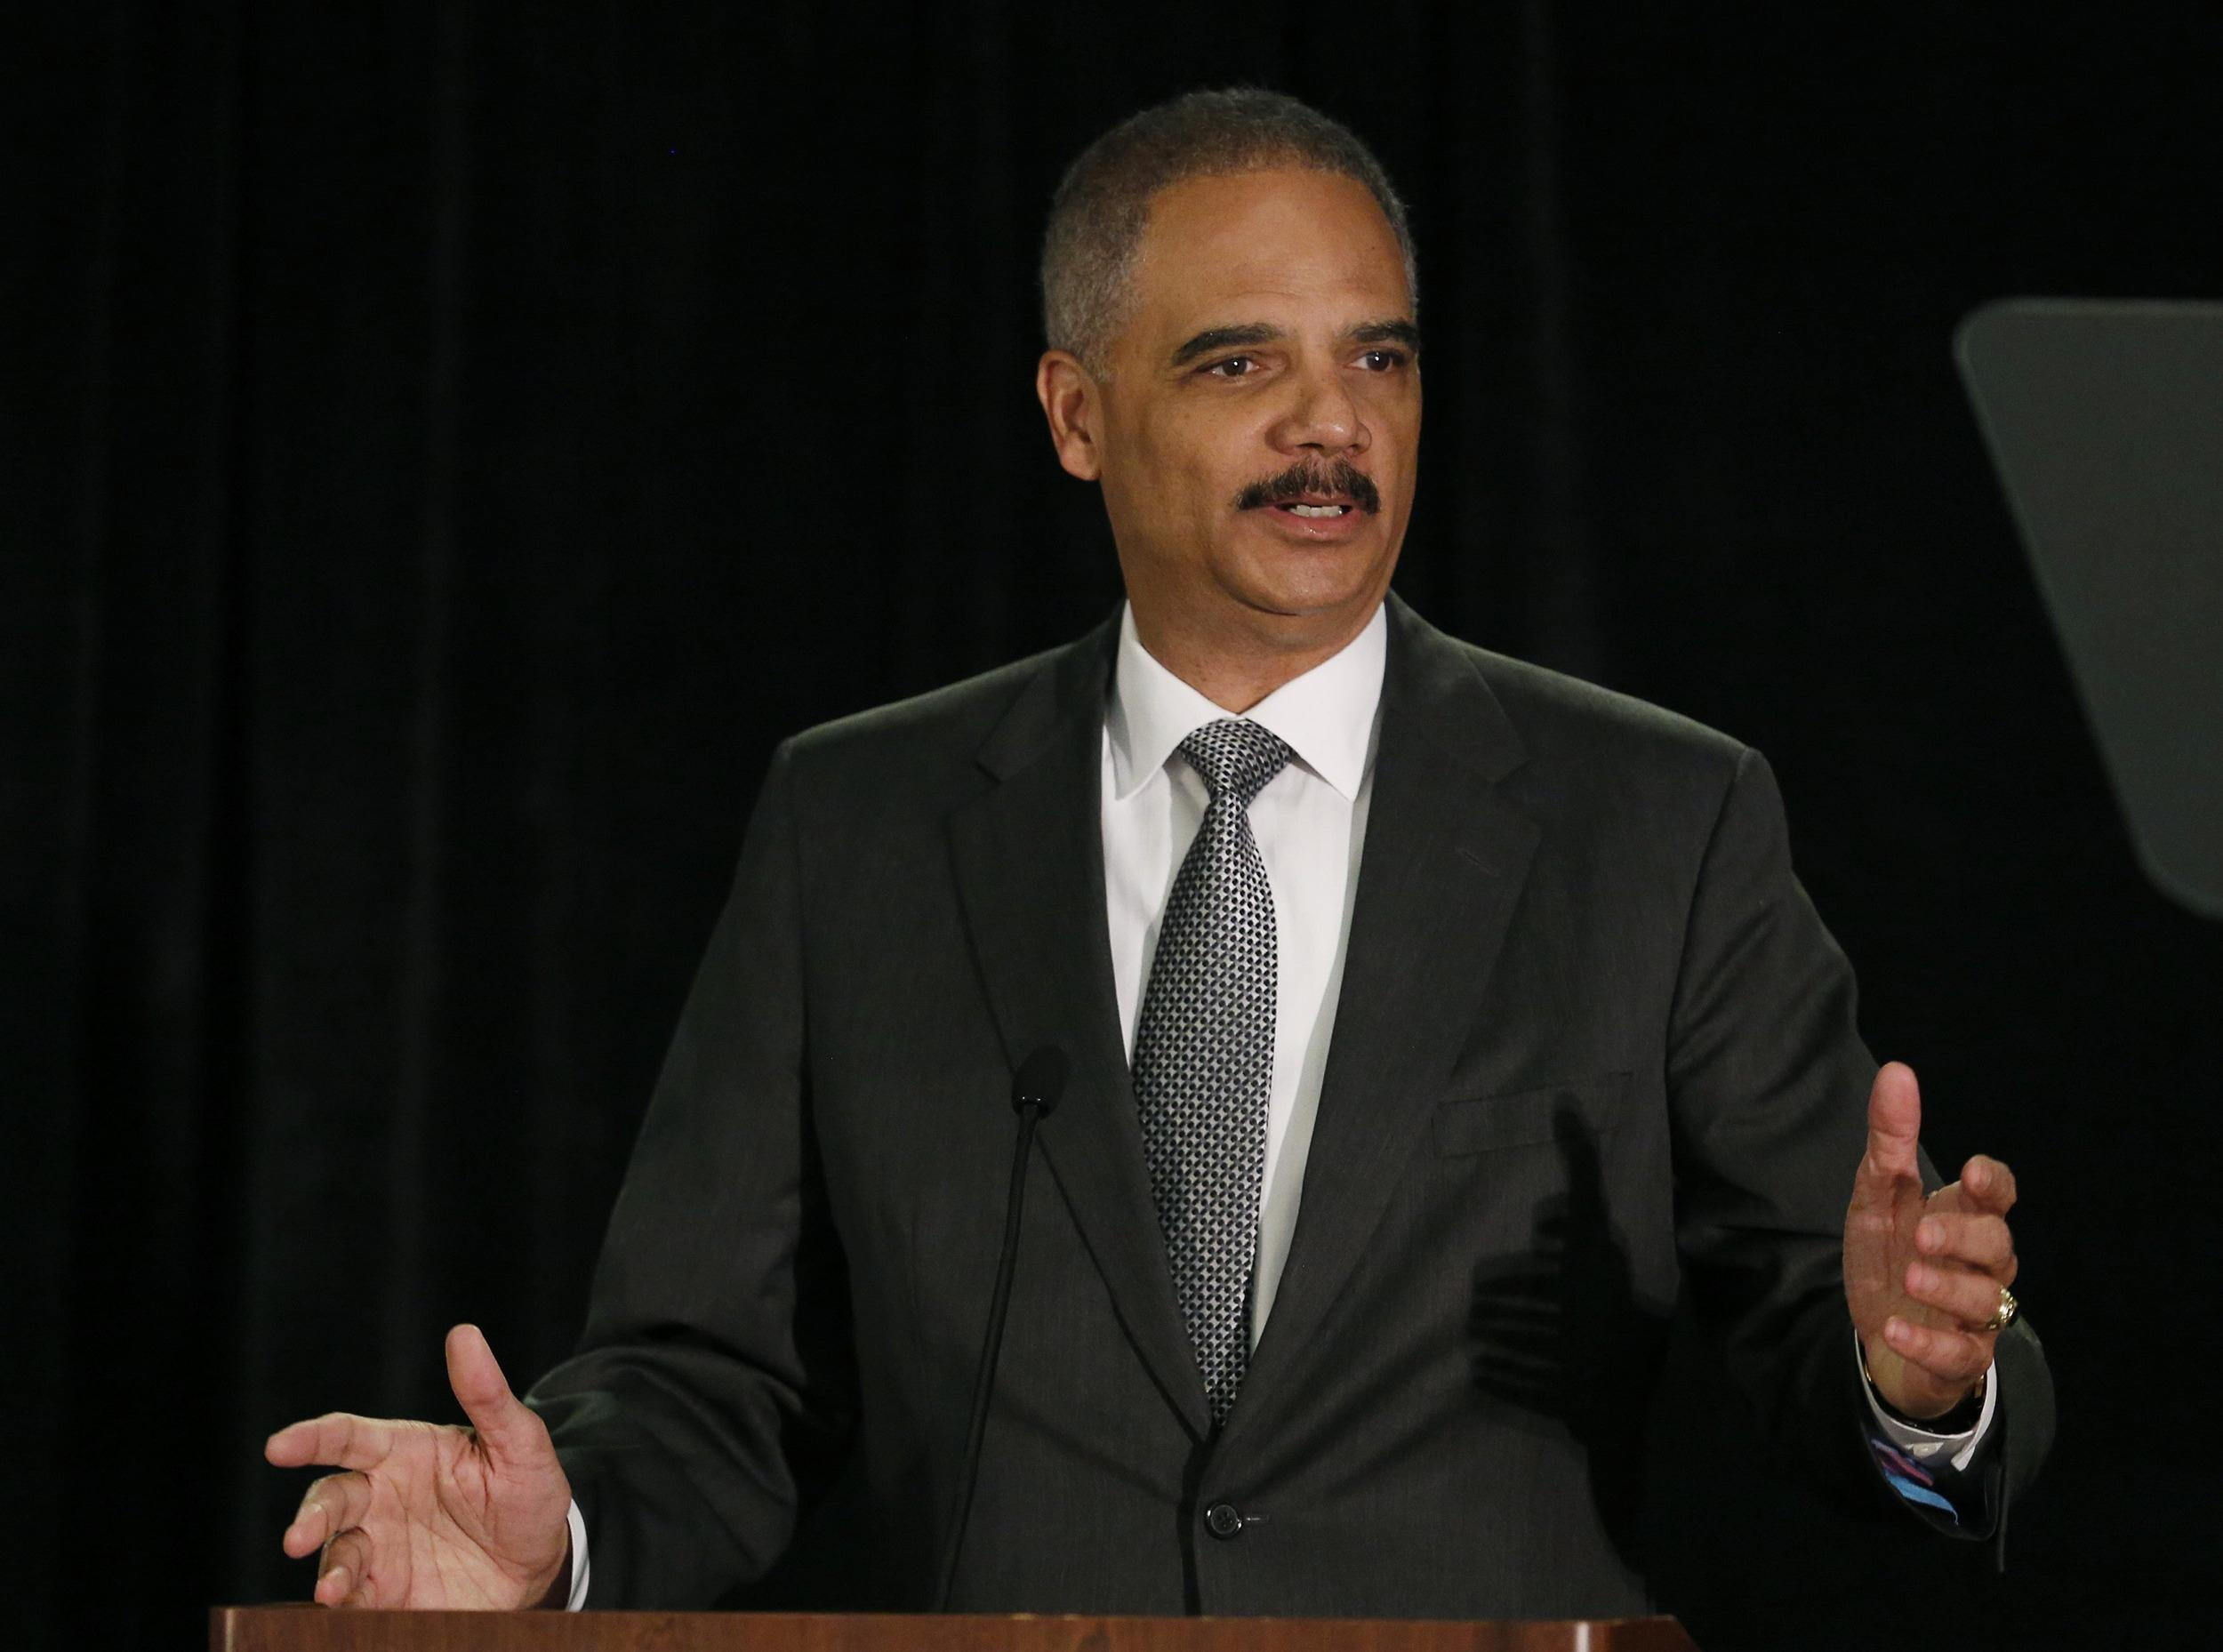 U.S. Attorney General Eric Holder said no person or bank is immune to prosecution if they break the law.